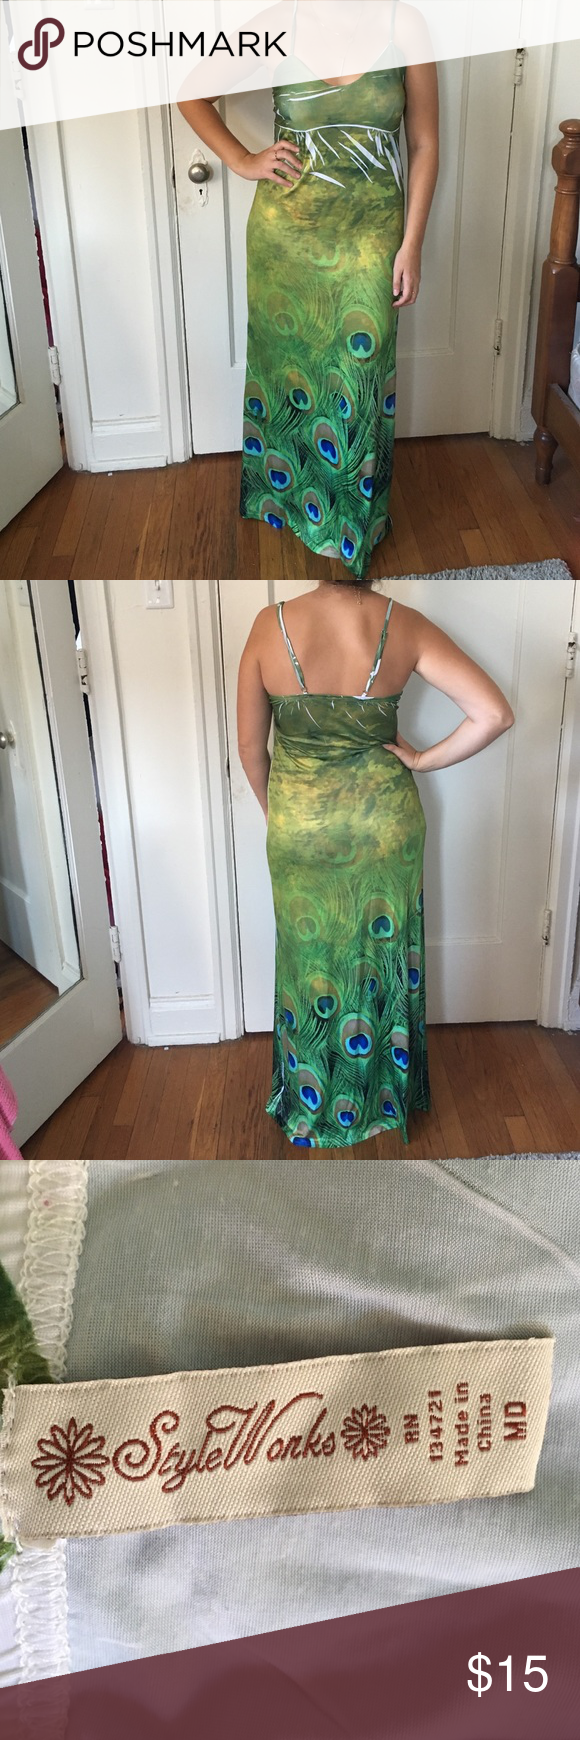 Peacock maxi dress Long maxi dress with peacock pattern, comfortable and flattering Dresses Maxi